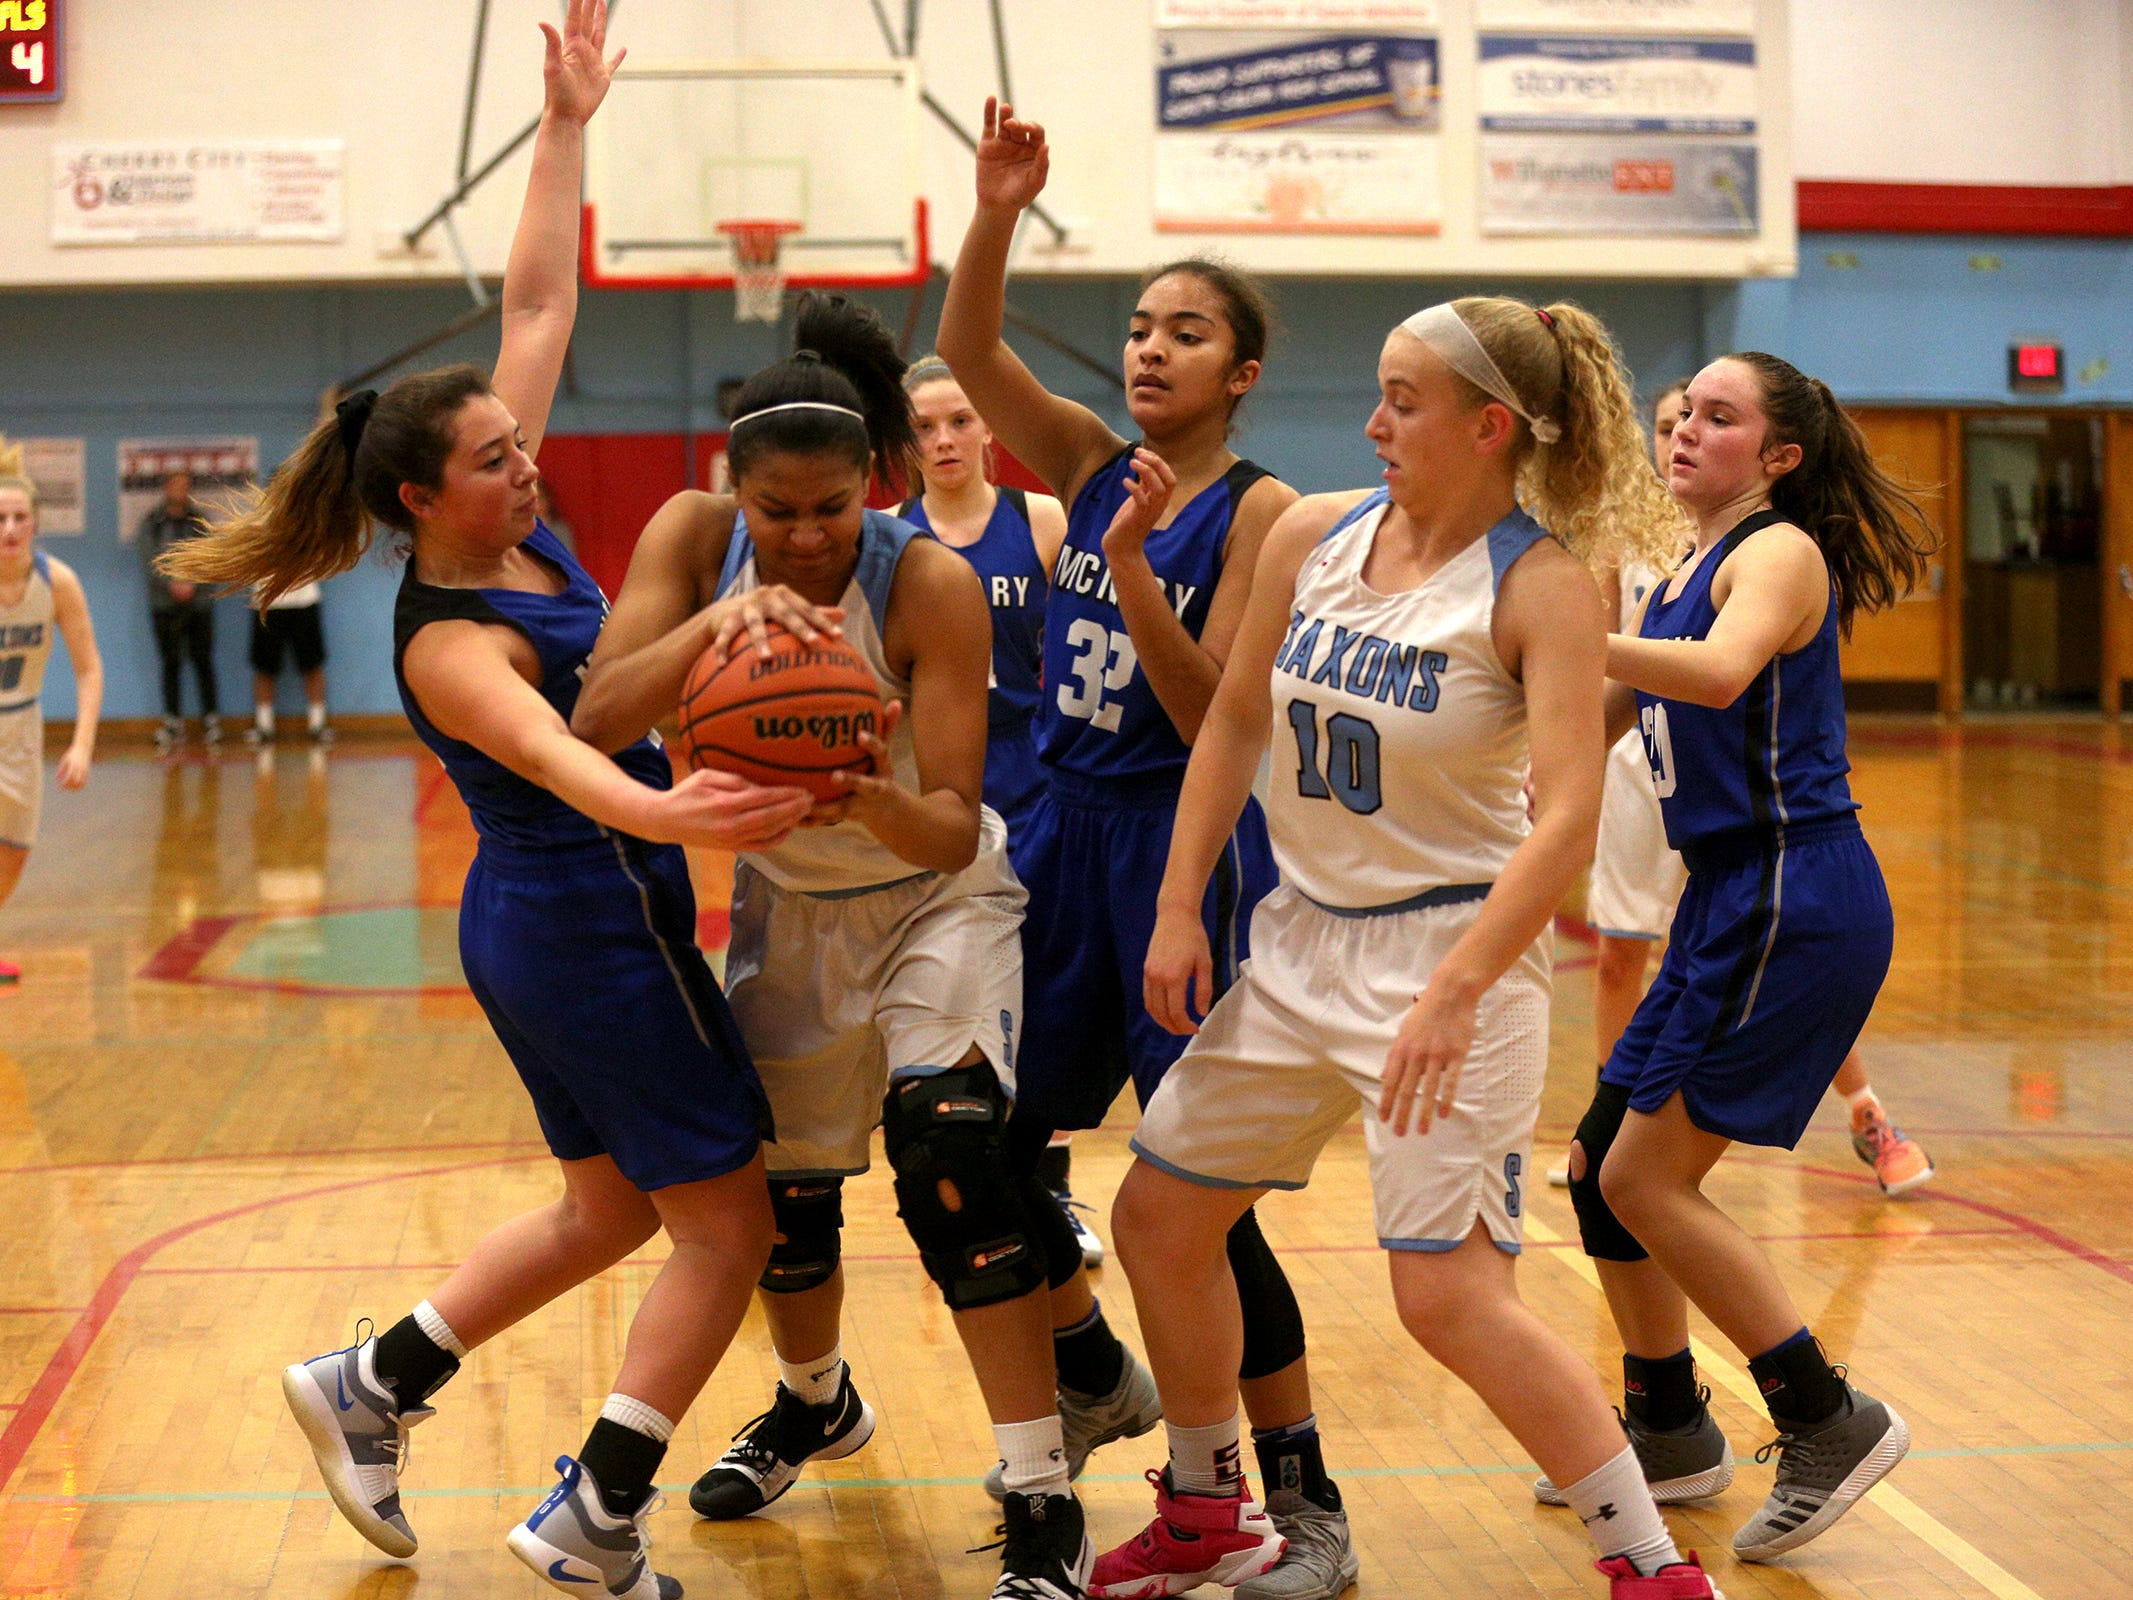 South Salem's Victoria Stafford (23) maintains control of the ball during the South Salem High School girls basketball game against McNary High School in Salem on Thursday, Jan. 31, 2019.